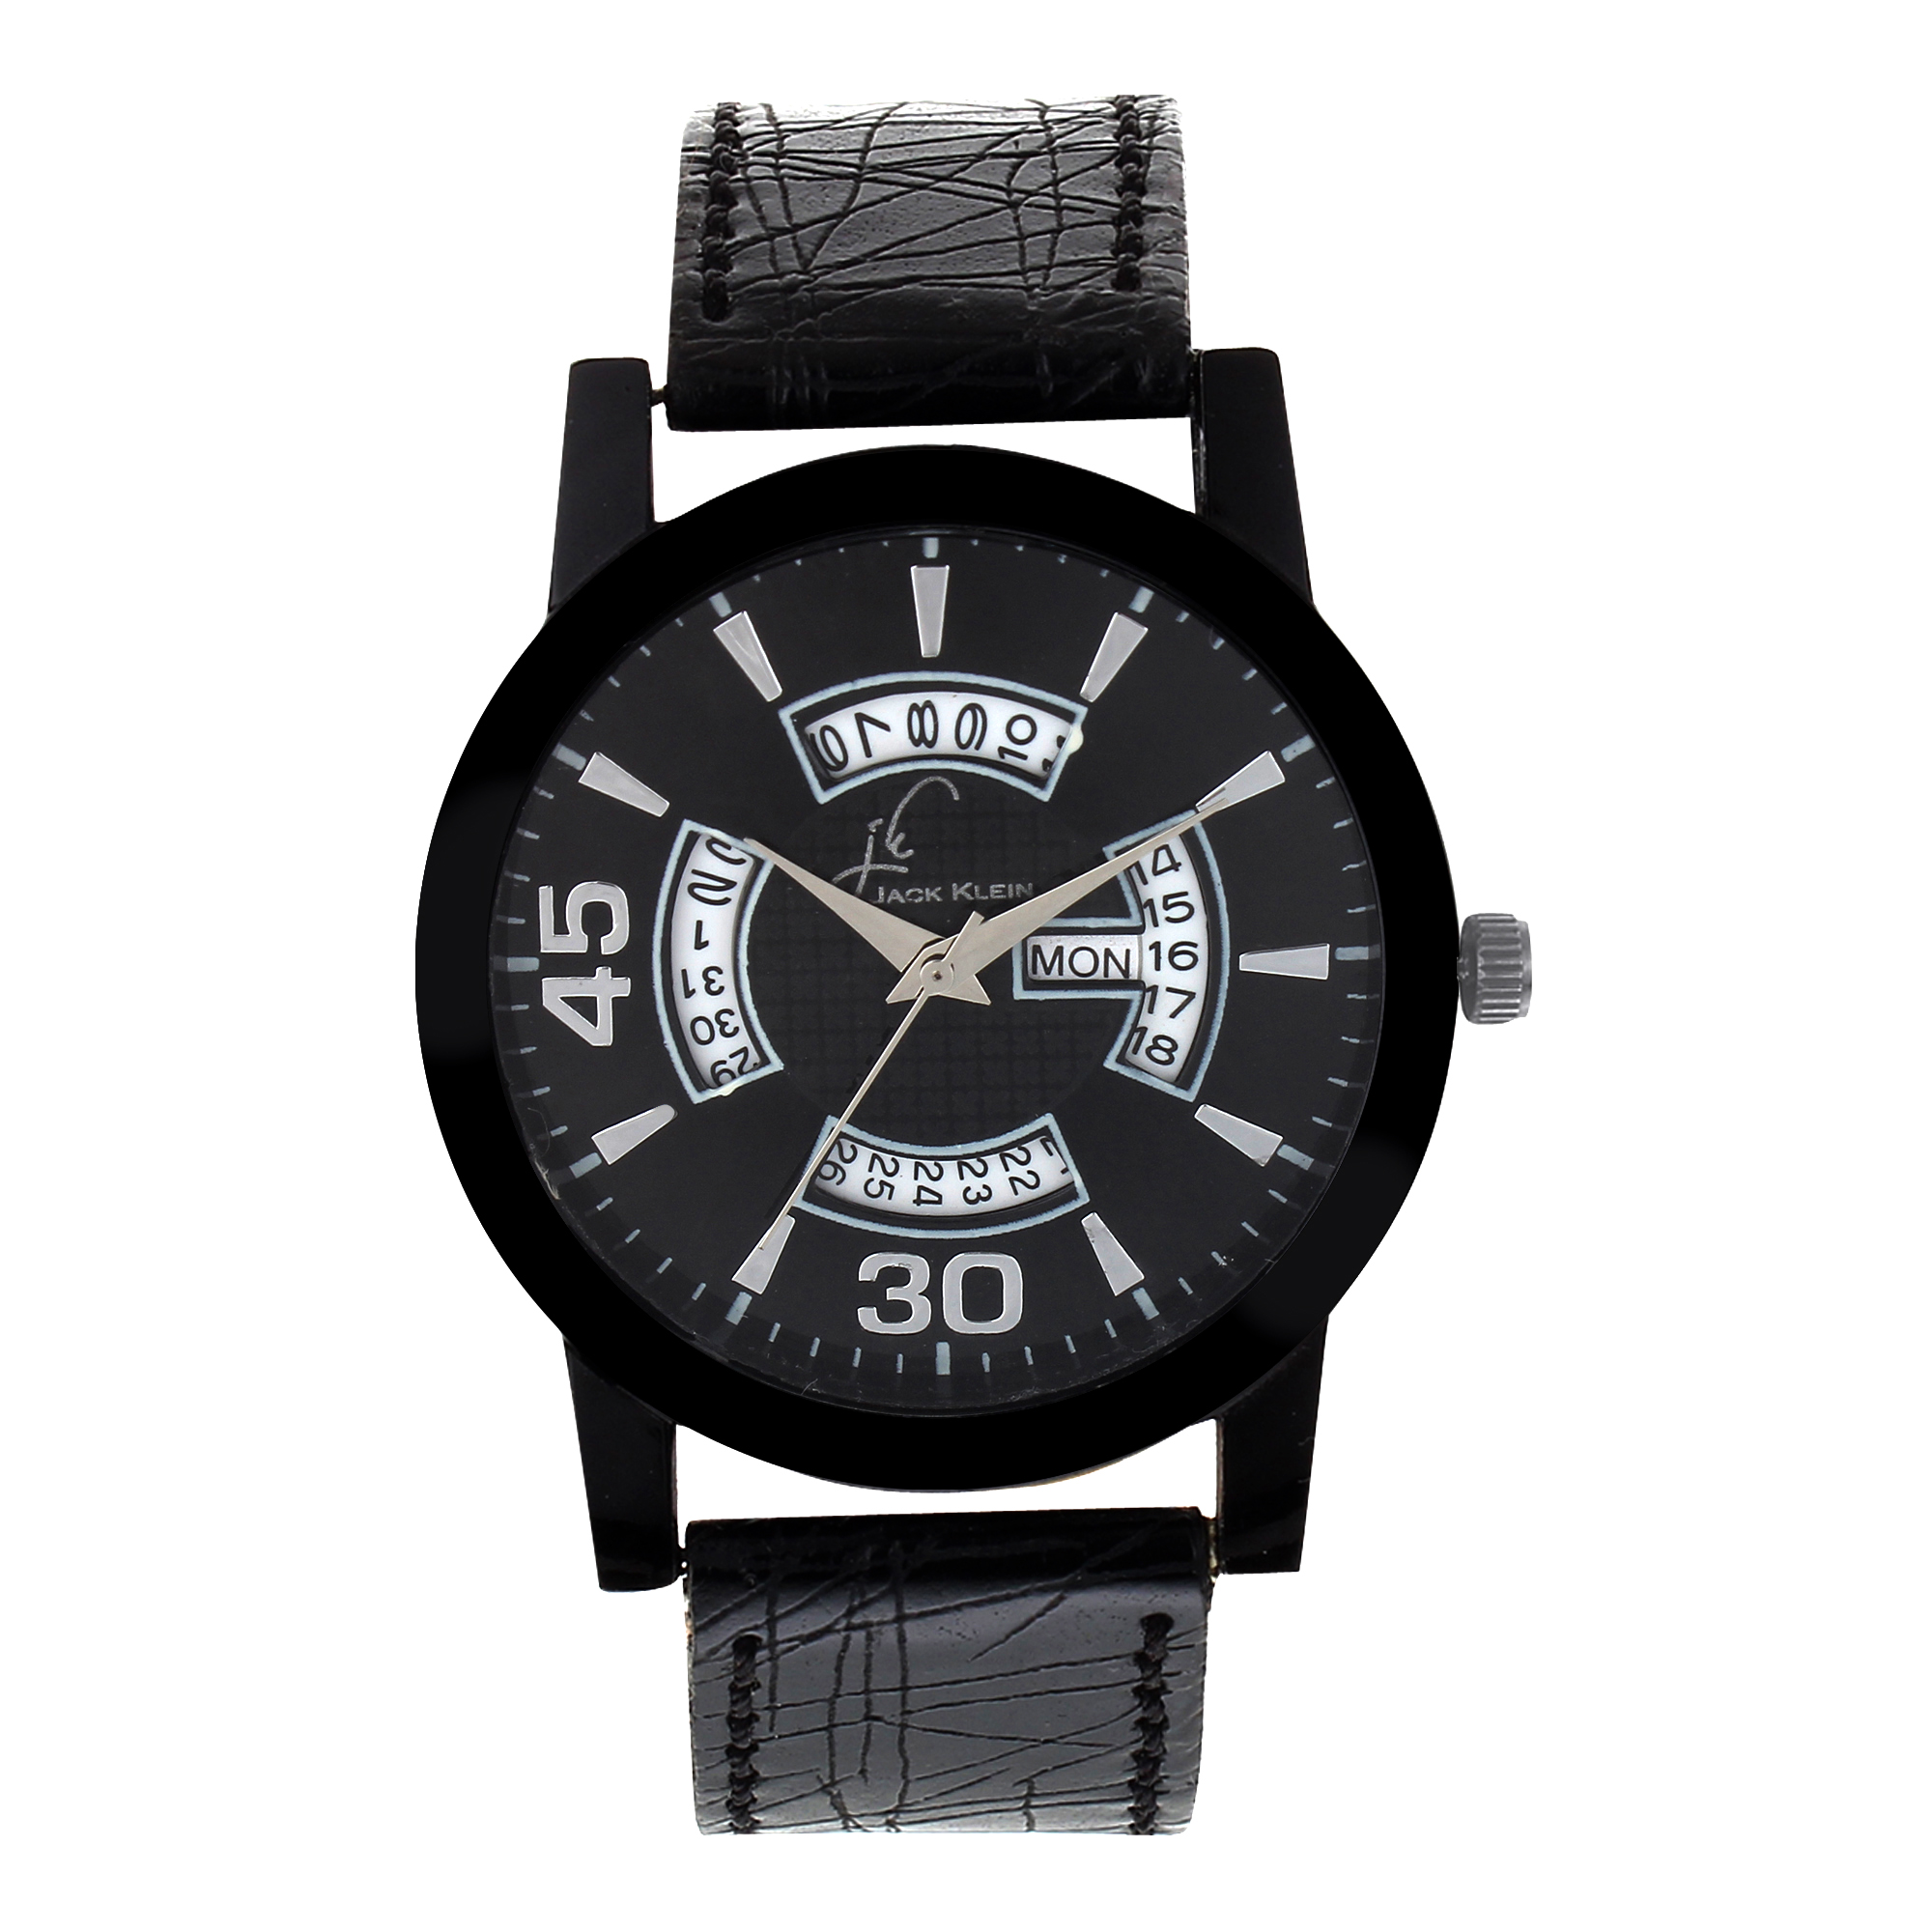 Jack klein Trendy Black Multi Function Day And Date Working Wrist Watch